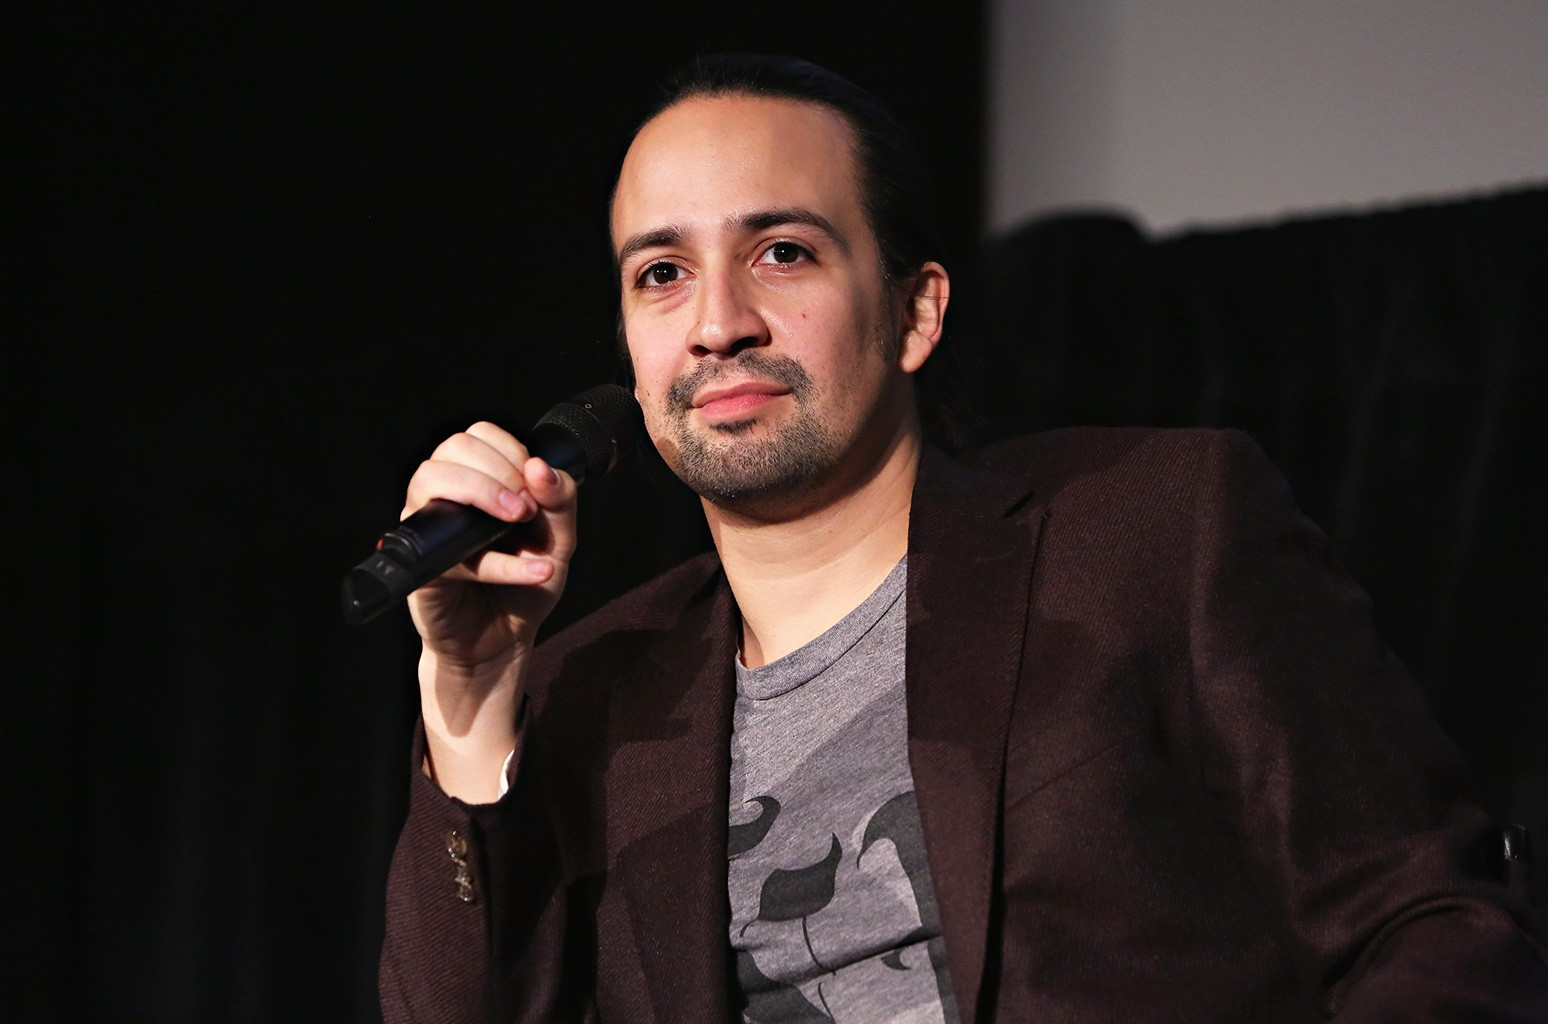 NEW YORK, NY - OCTOBER 04:  Actor Lin-Manuel Miranda speaks onstage during The New Yorker Festival 2015 - Lin-Manuel Miranda Talks With Rebecca Mead at DGA Theater on October 4, 2015 in New York City.  (Photo by Cindy Ord/Getty Images for The New Yorker)